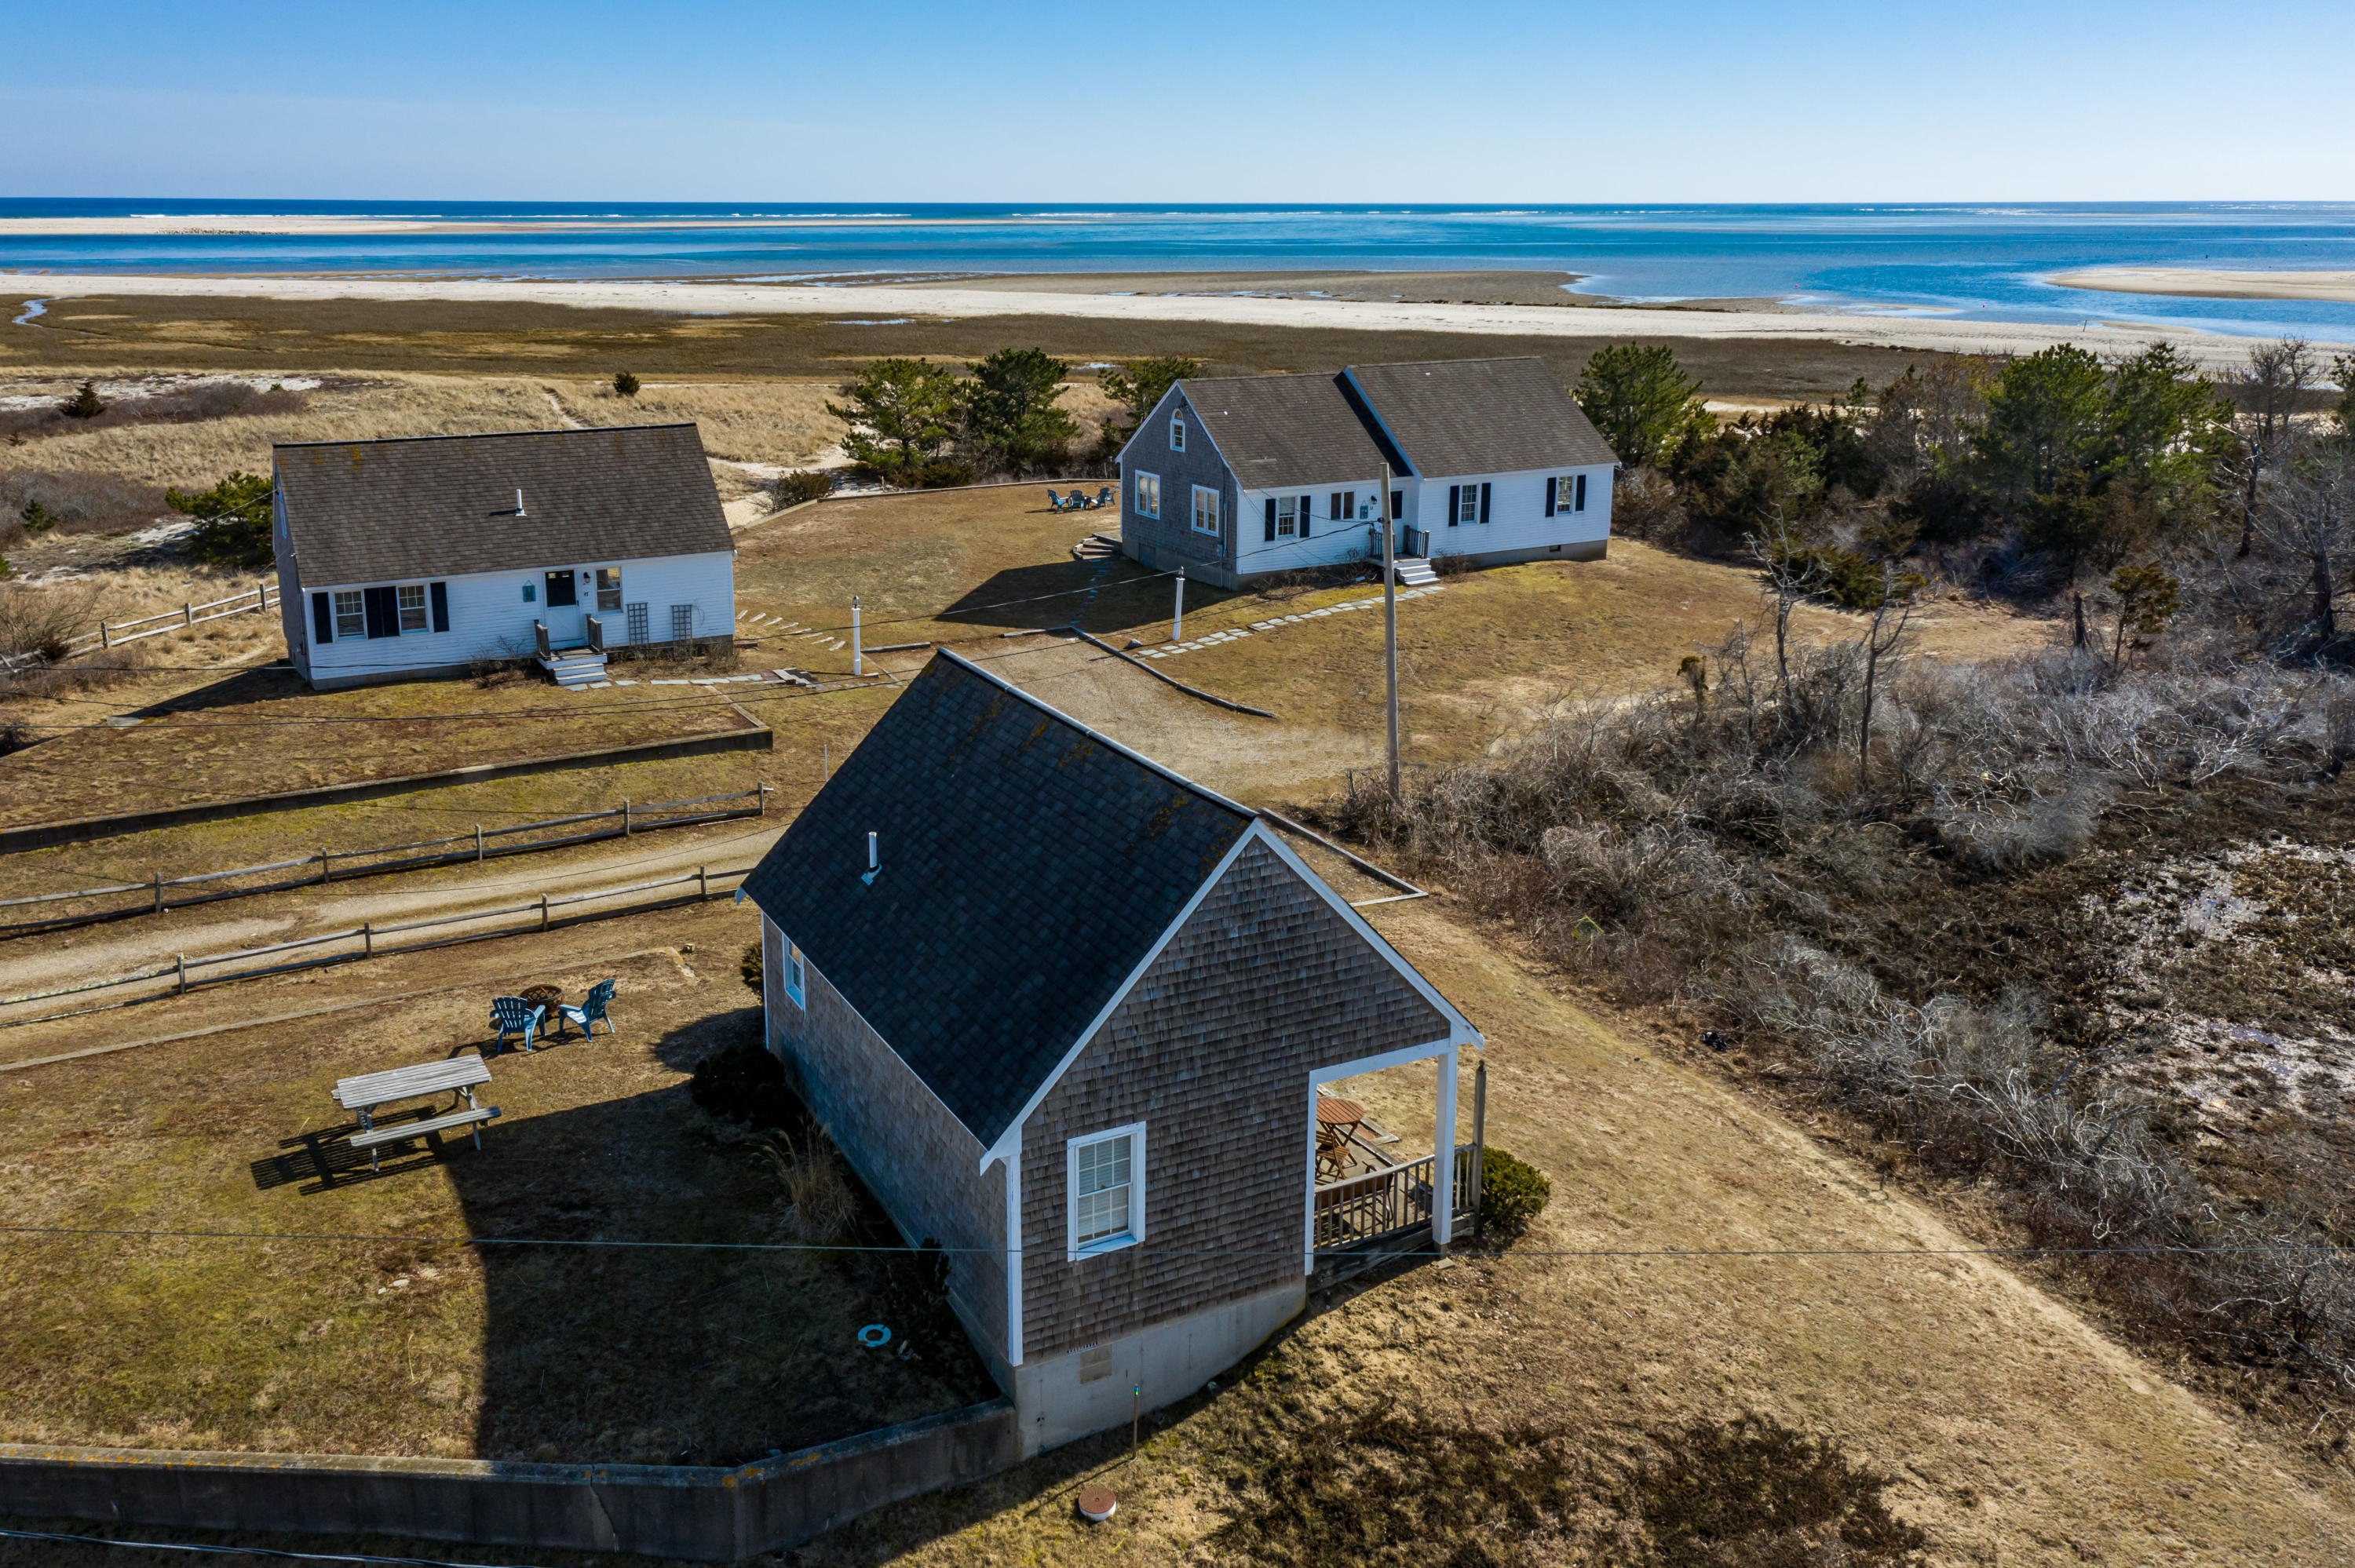 click to view more details 46 Little Beach Road, Chatham, MA 02633